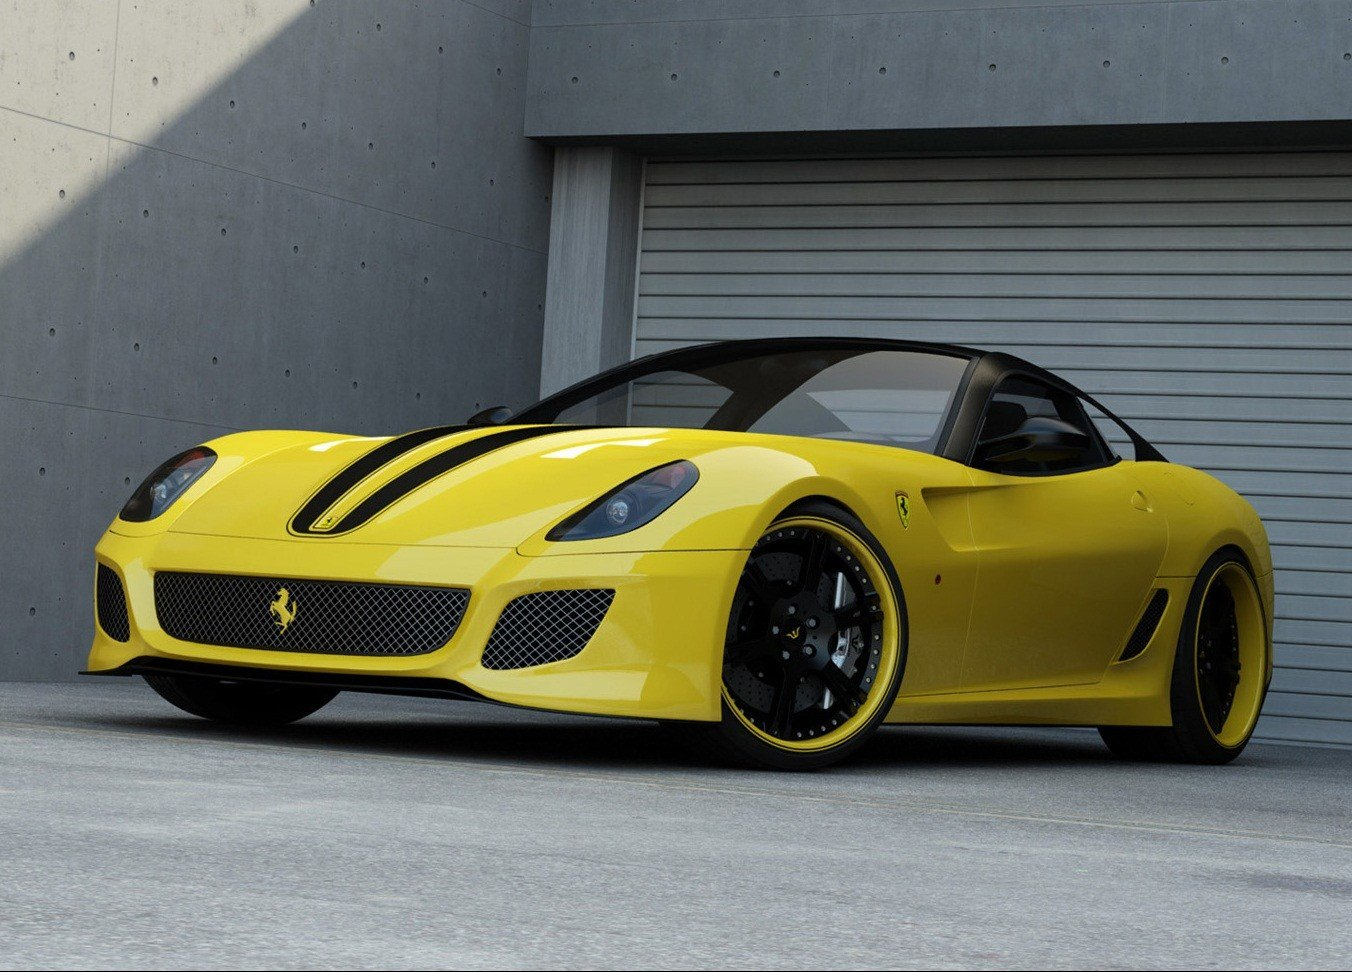 New Black And Yellow Cool Cars 1 Free Hd Wallpaper On This Month